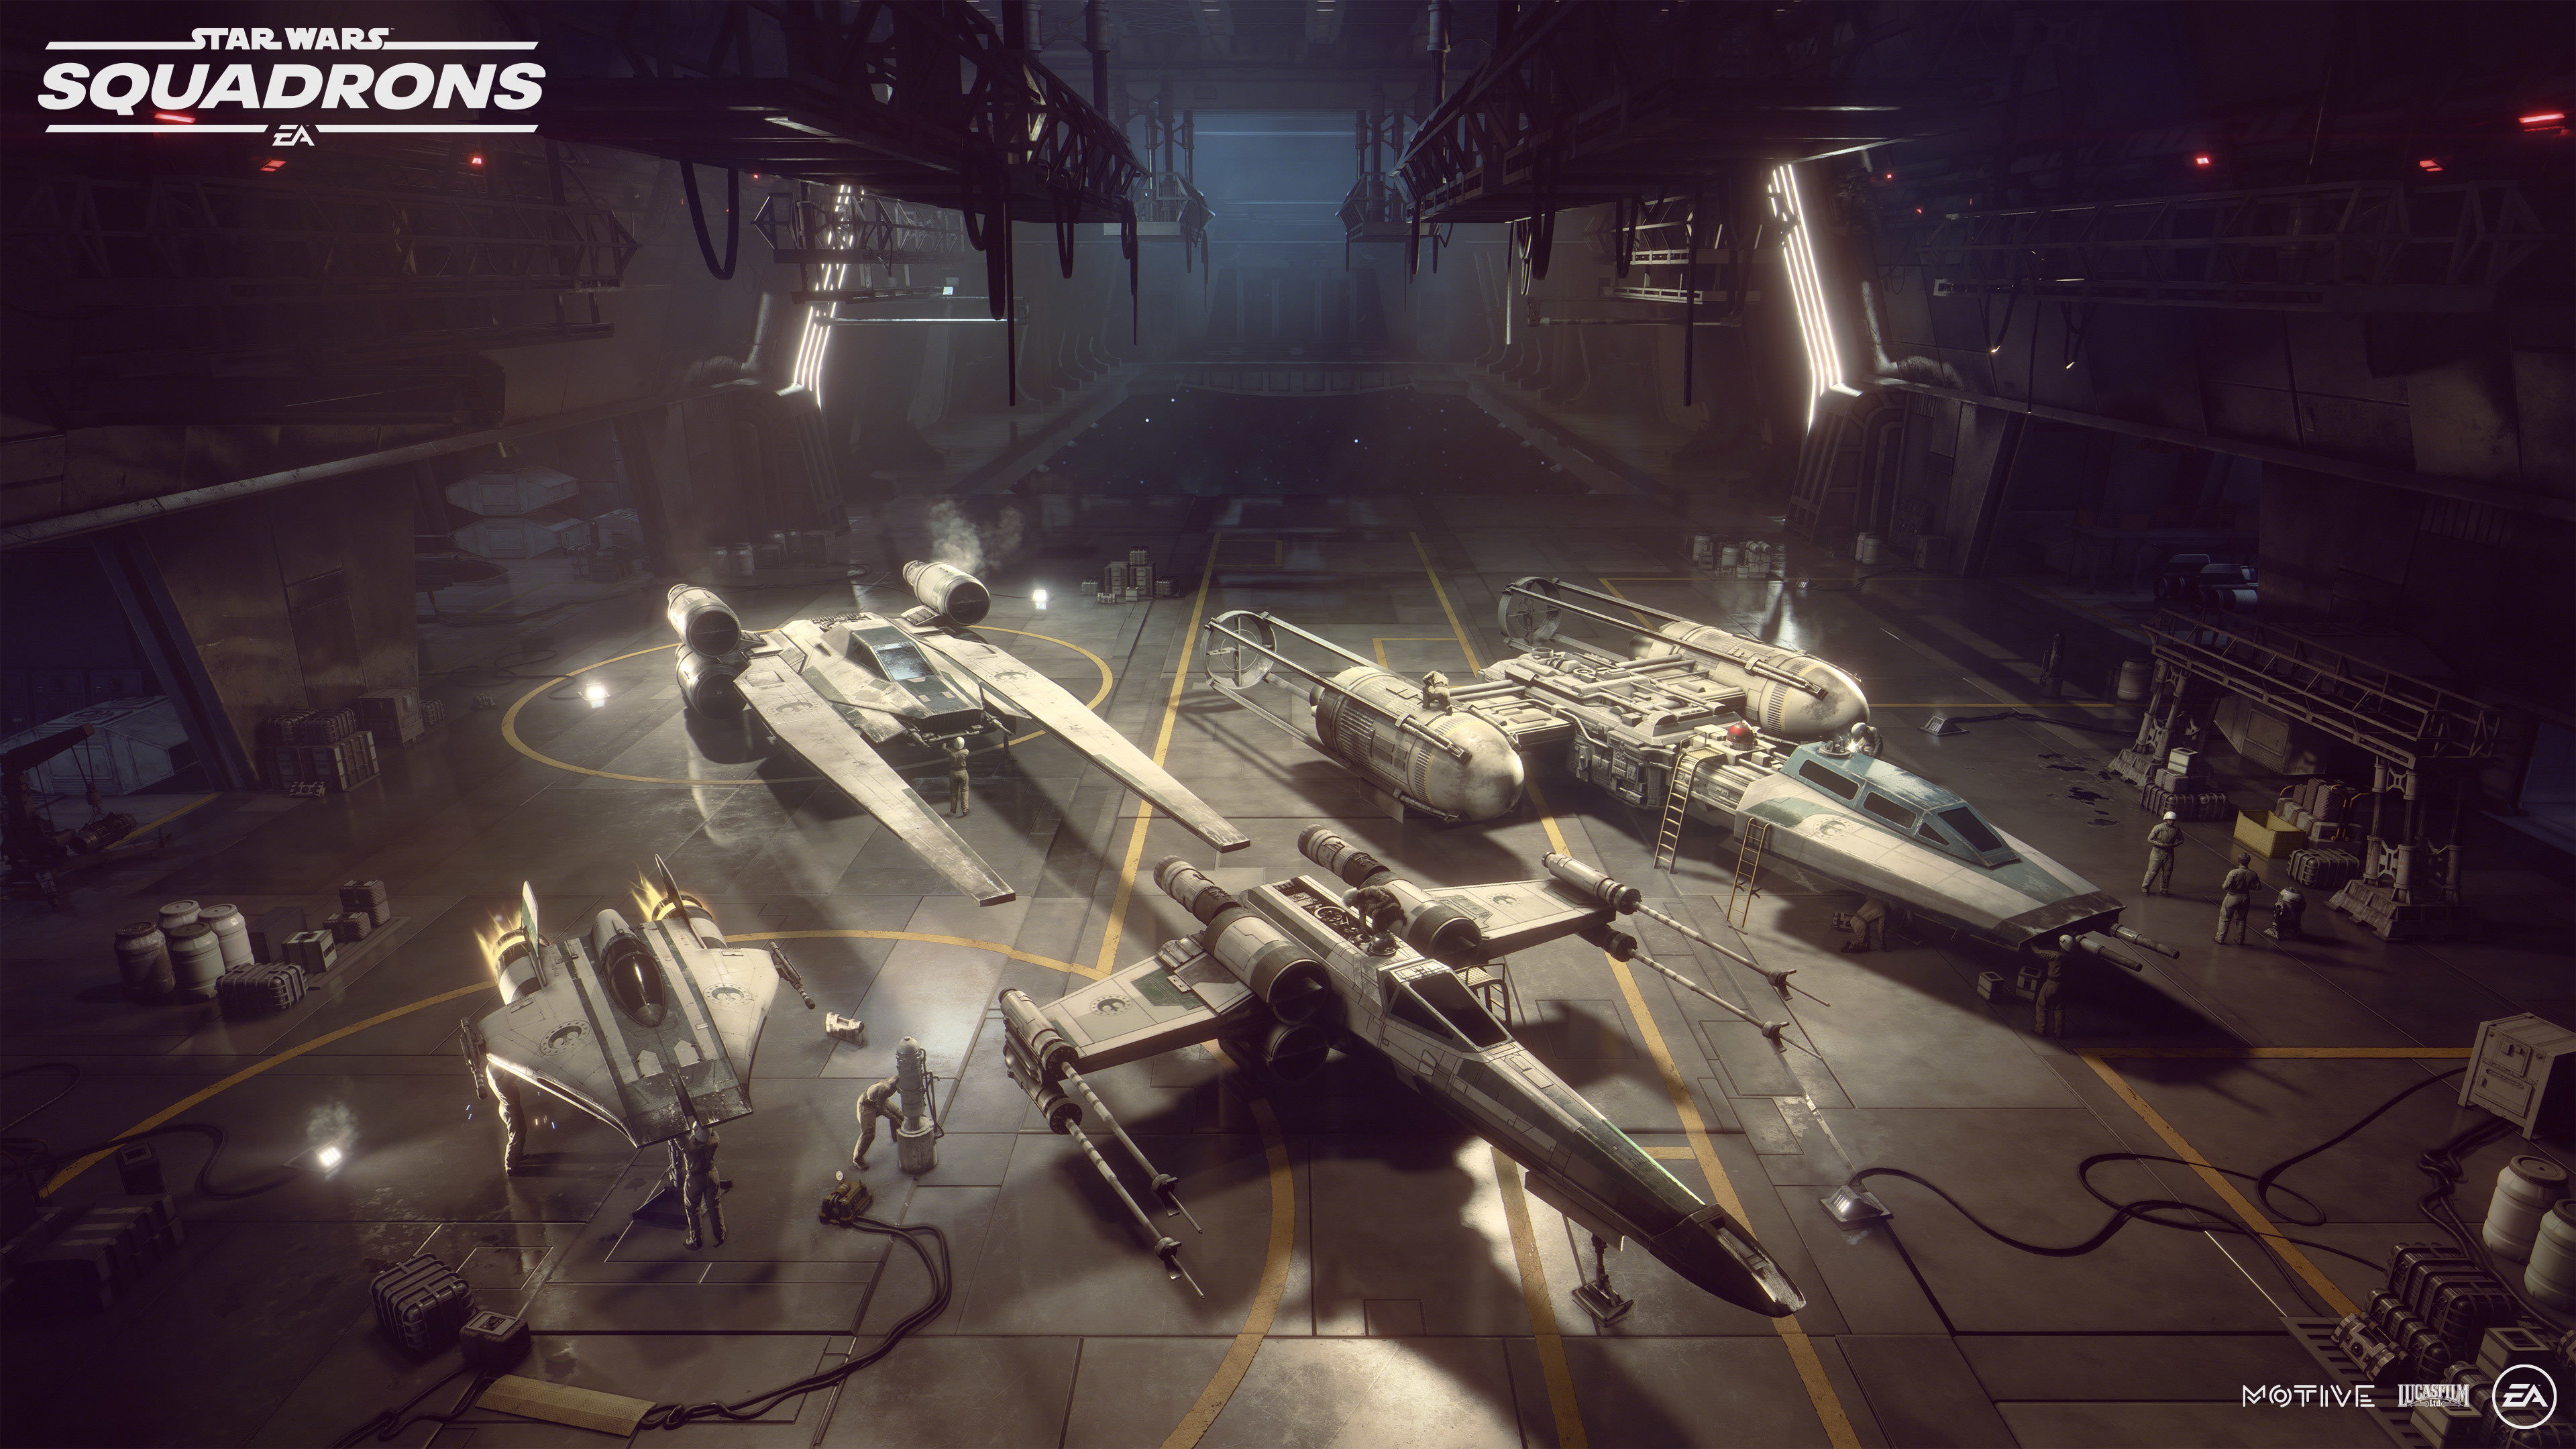 Star Wars Squadrons Wallpaper 4k Hanger Pc Games Playstation 4 Xbox One Games 1876